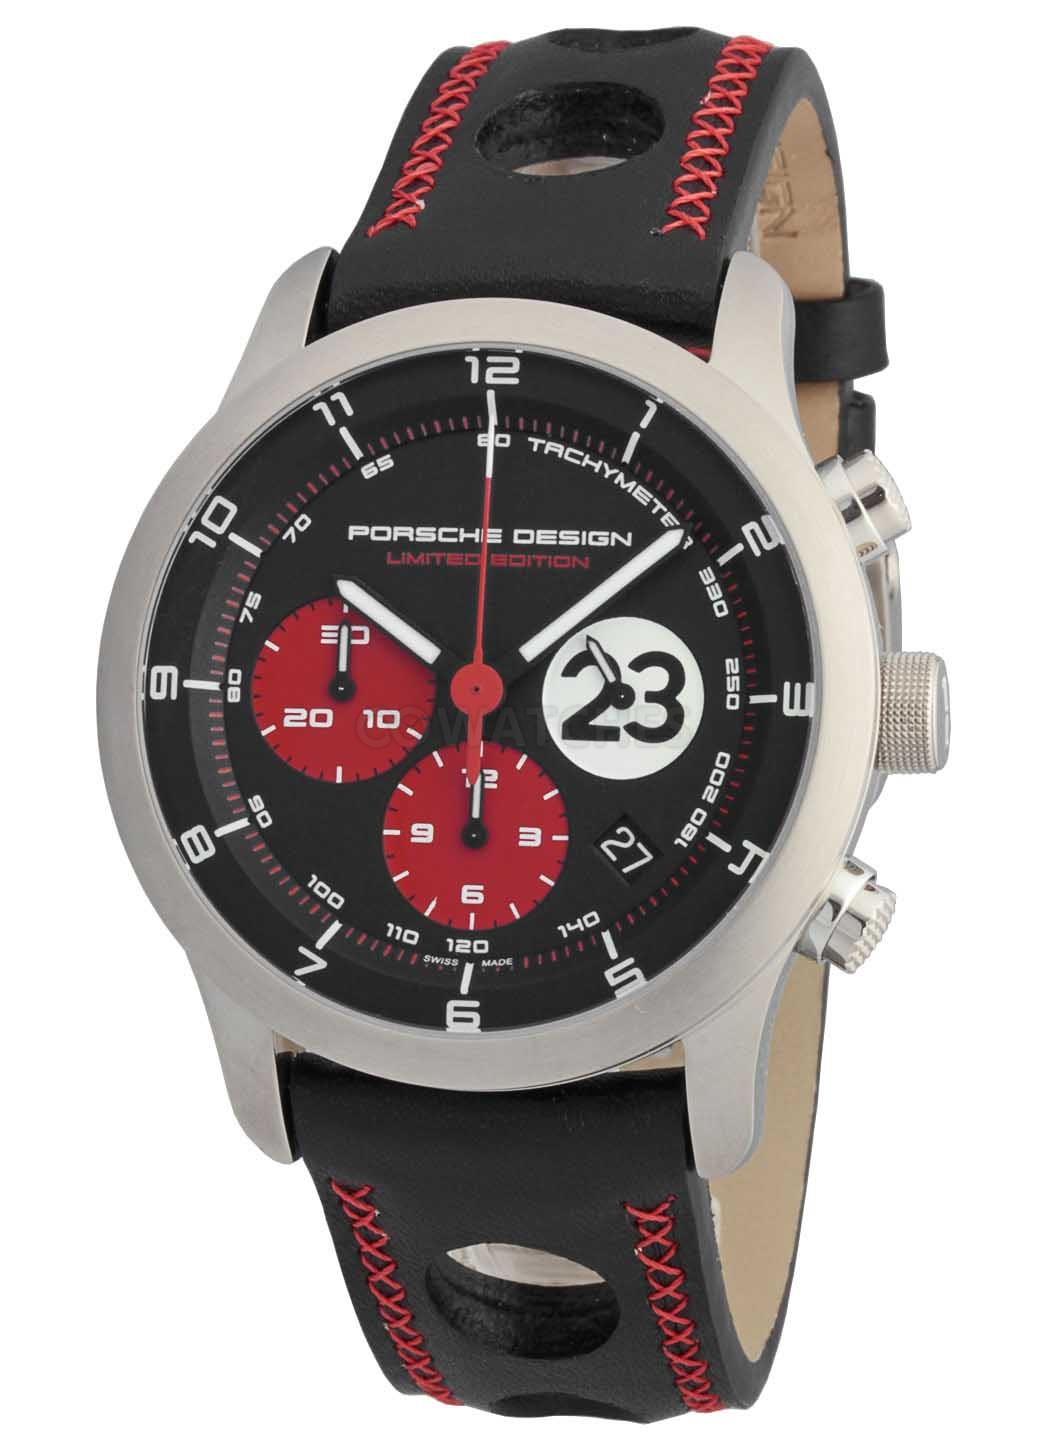 Porsche Design P6612 Dashboard Le Mans 1970 Gents Watch